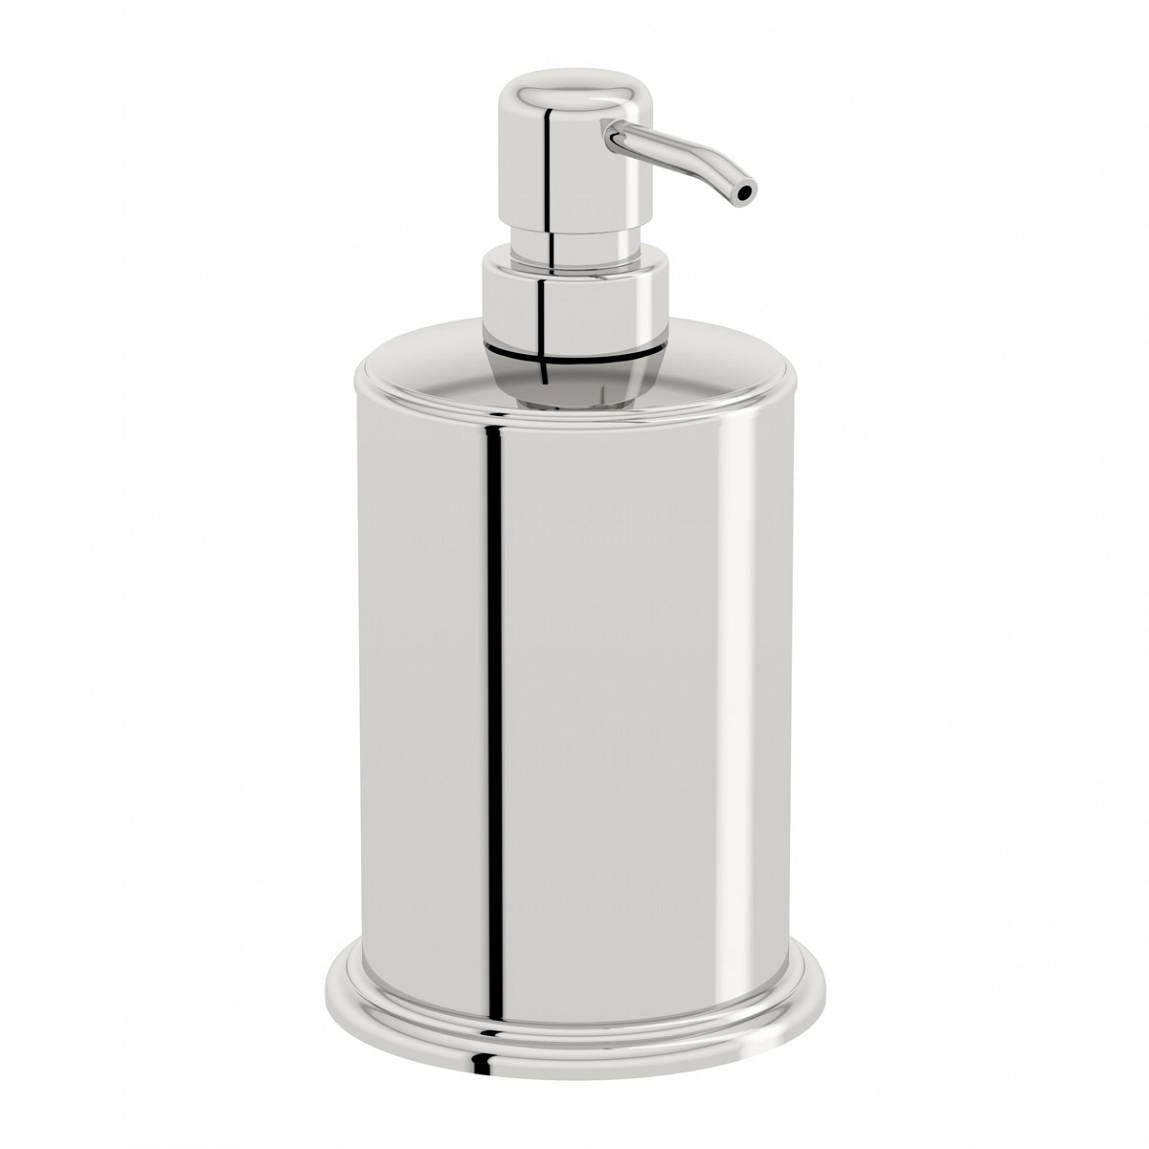 Orchard Options freestanding stainless steel soap dispenser